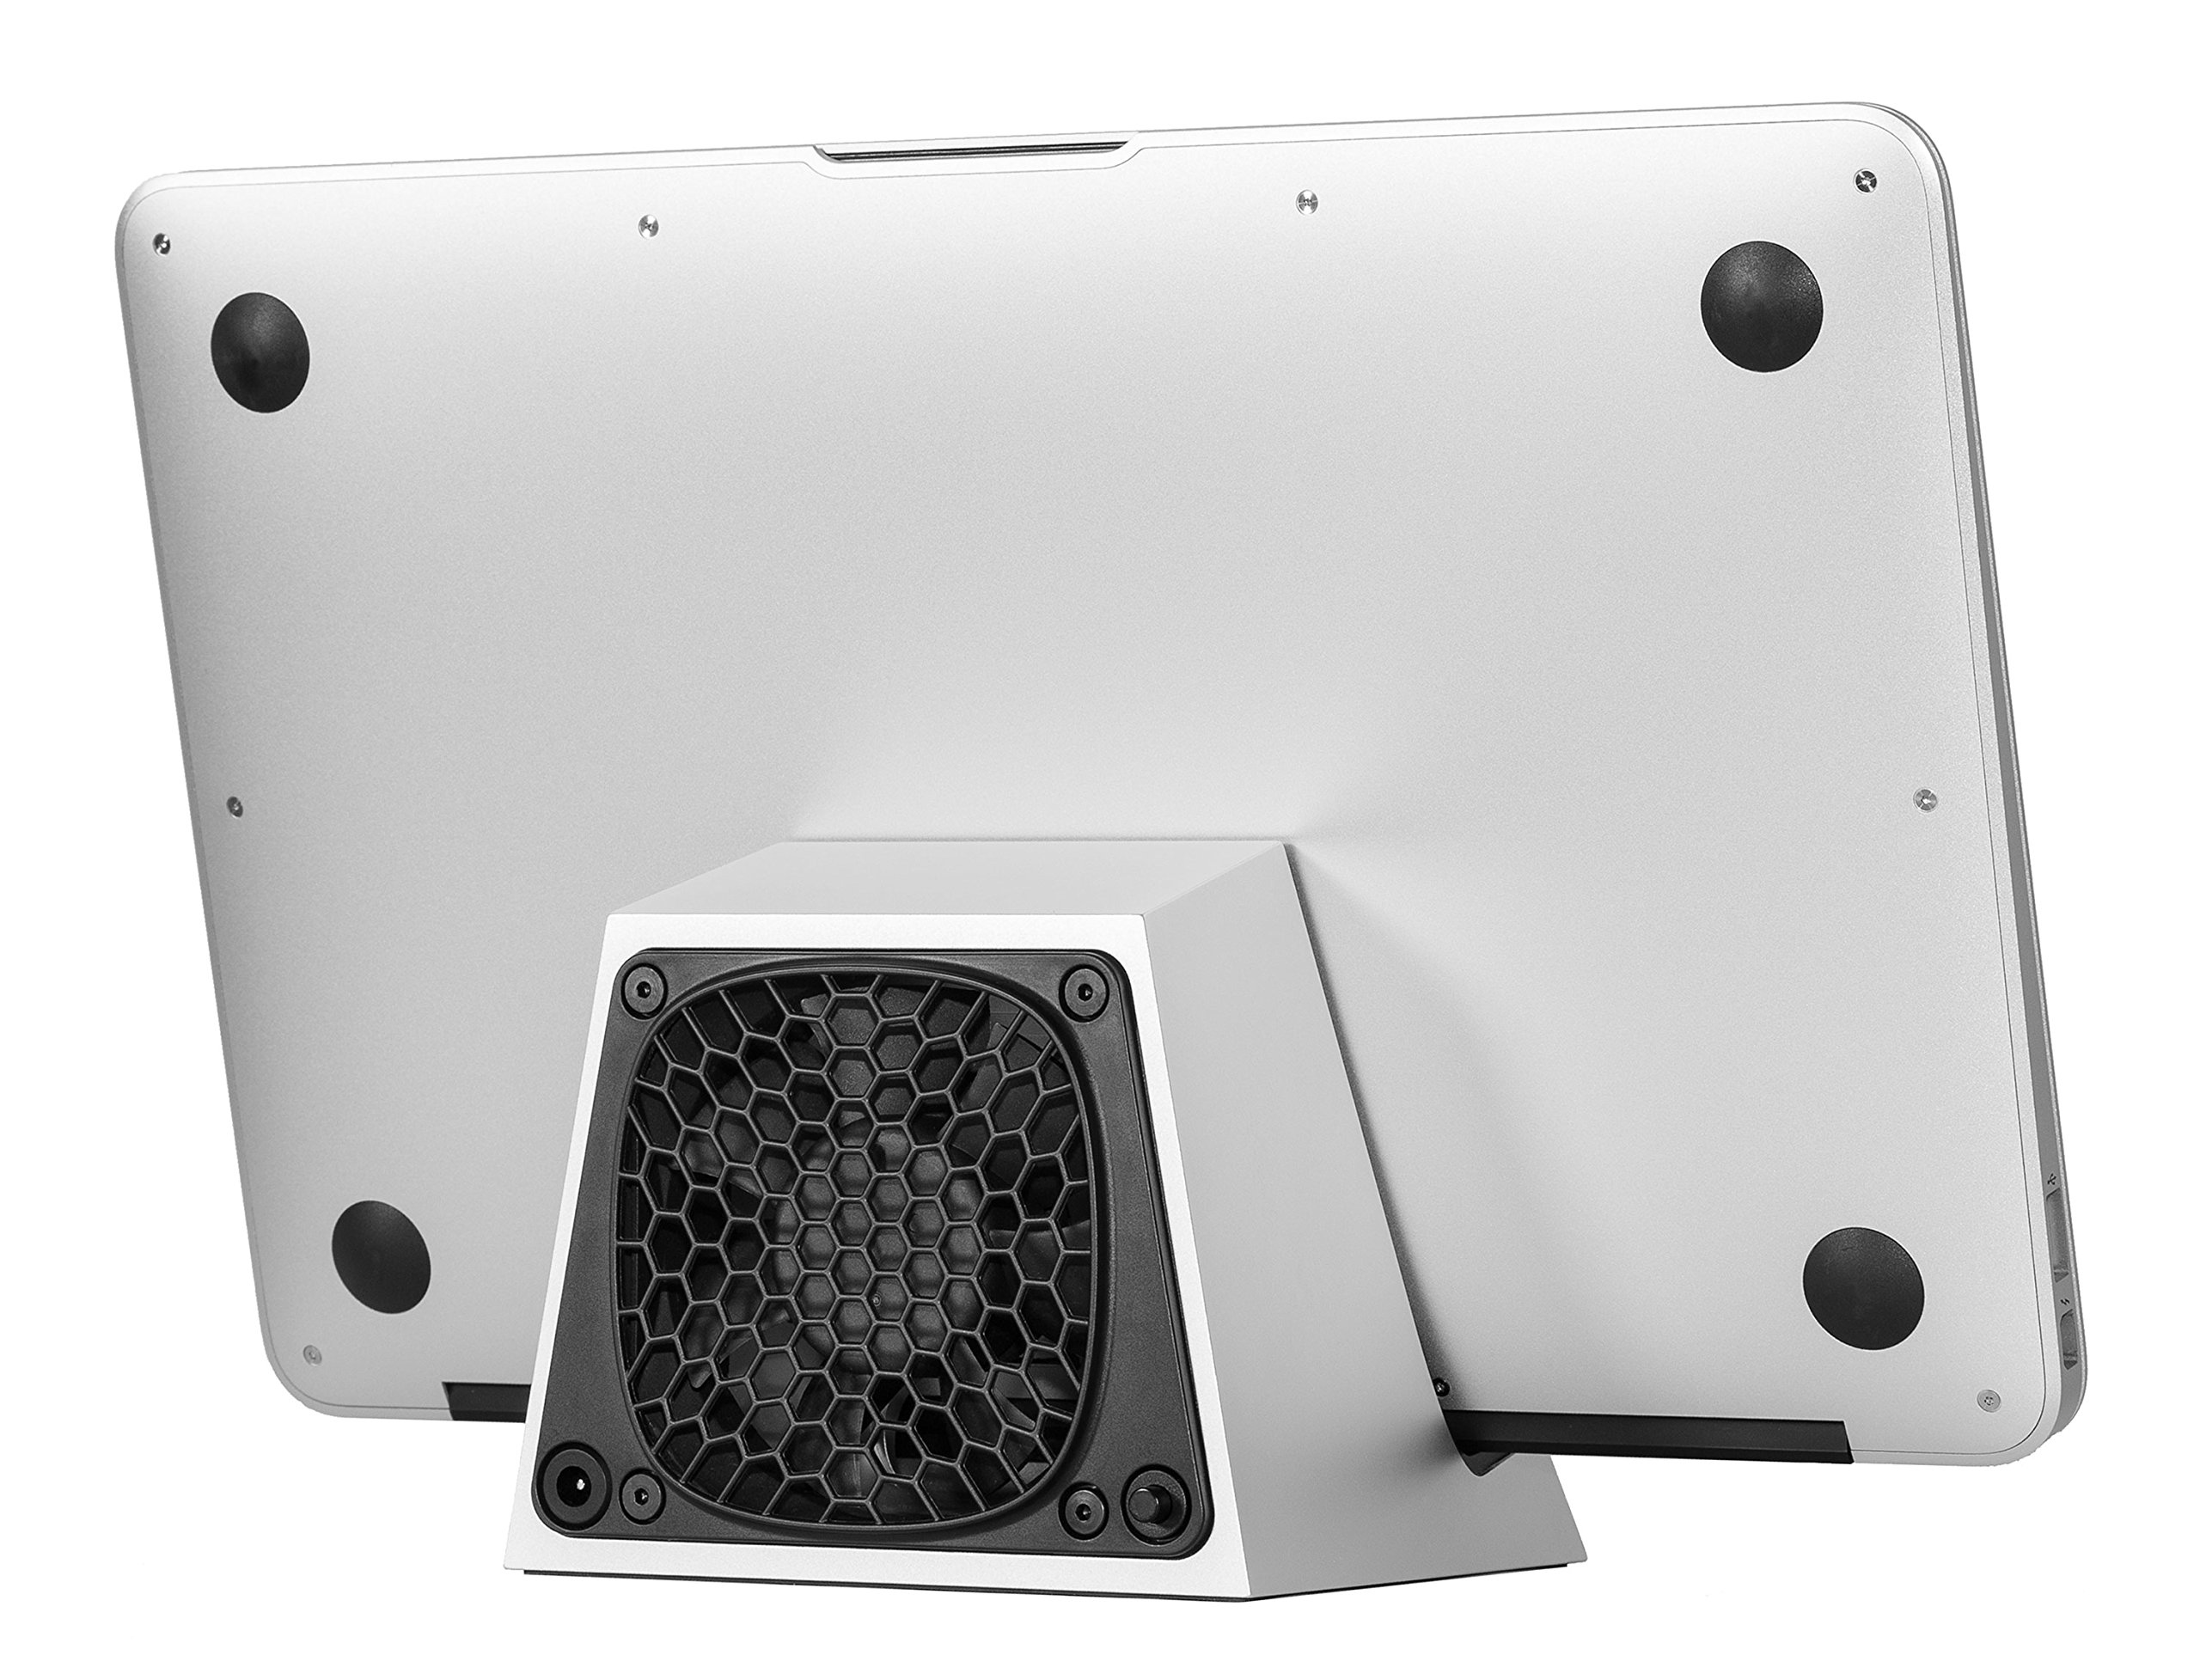 SVALT D2 High-Performance Cooling Dock for Apple Retina MacBook Pro and MacBook Air laptops by SVALT (Image #3)